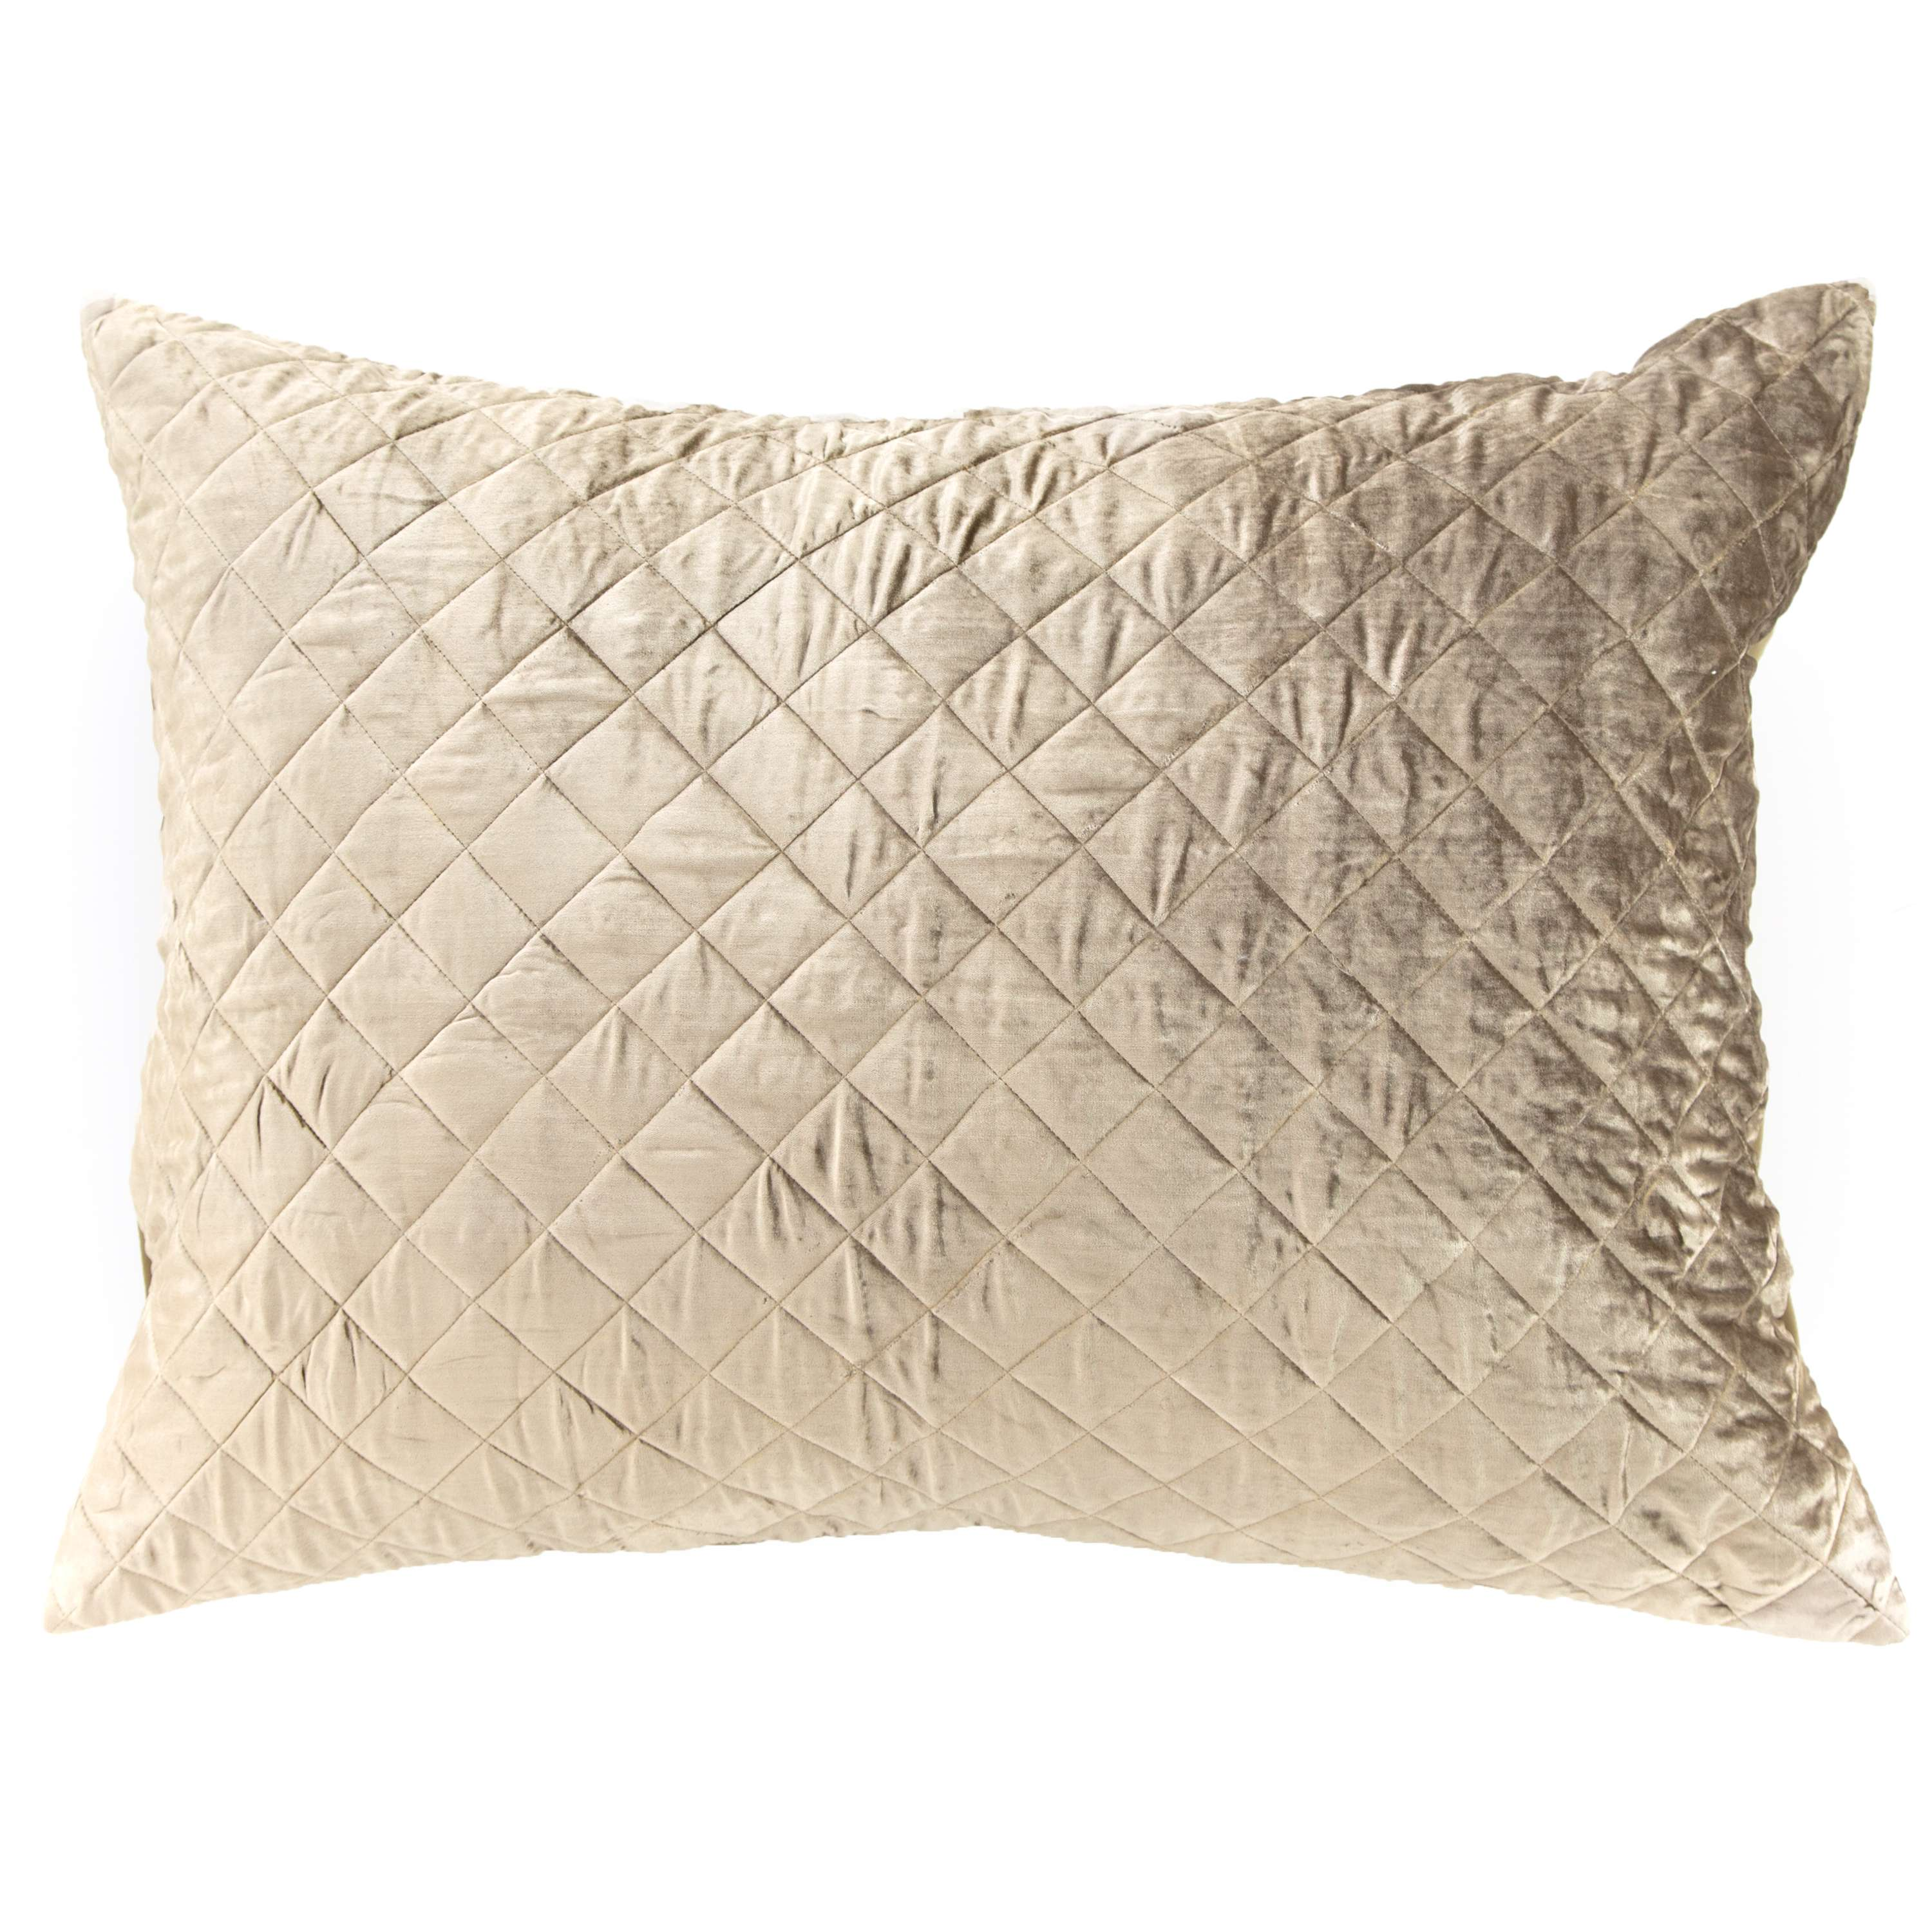 Clearance Pillows Decorative Pillows | Annie Selke Outlet